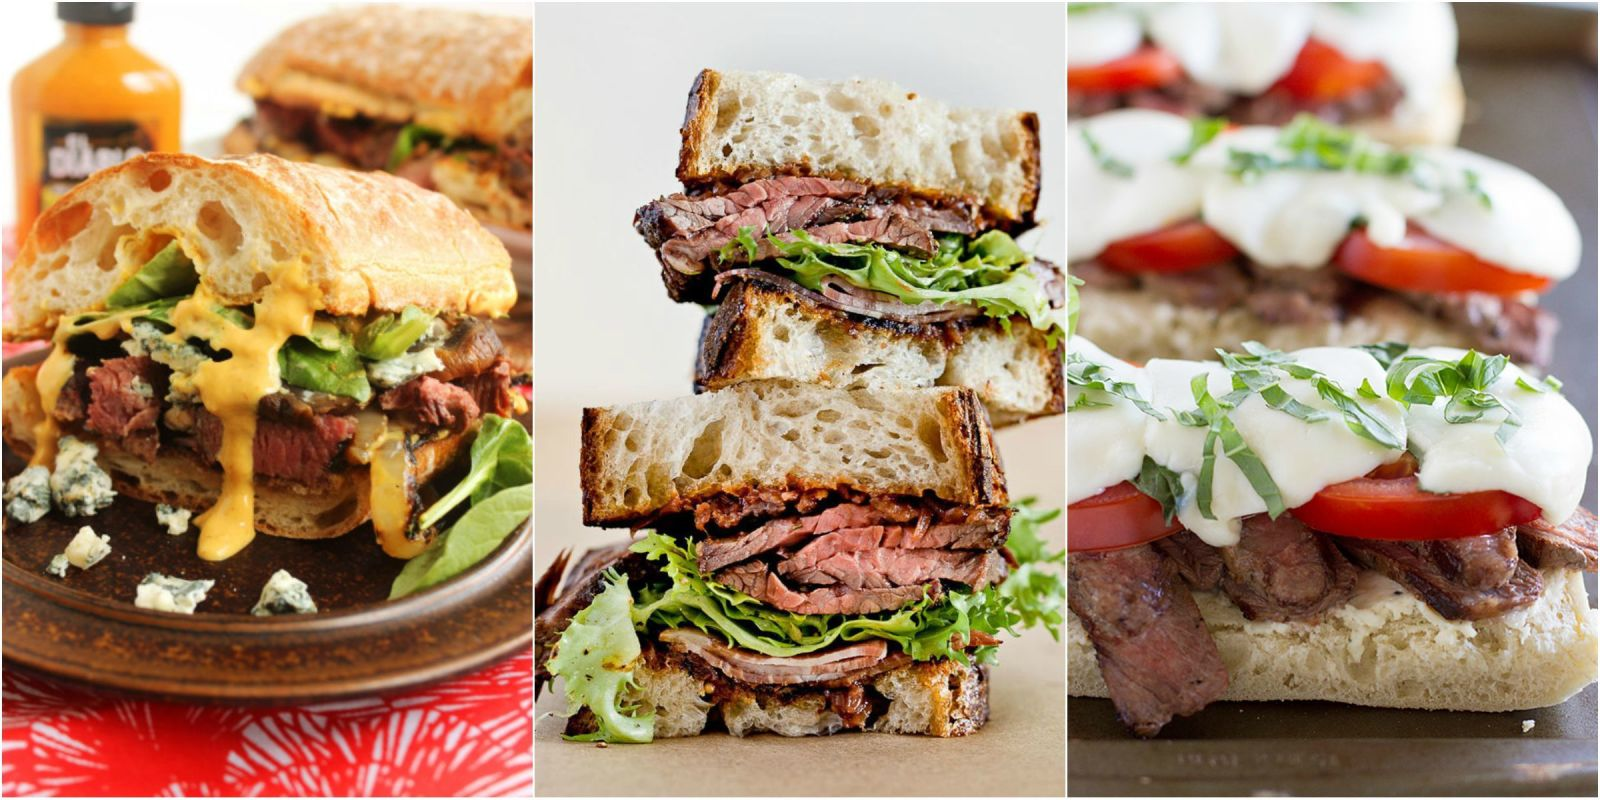 15 Easy Steak Sandwich Recipes - How to Make a Steak Sandwich